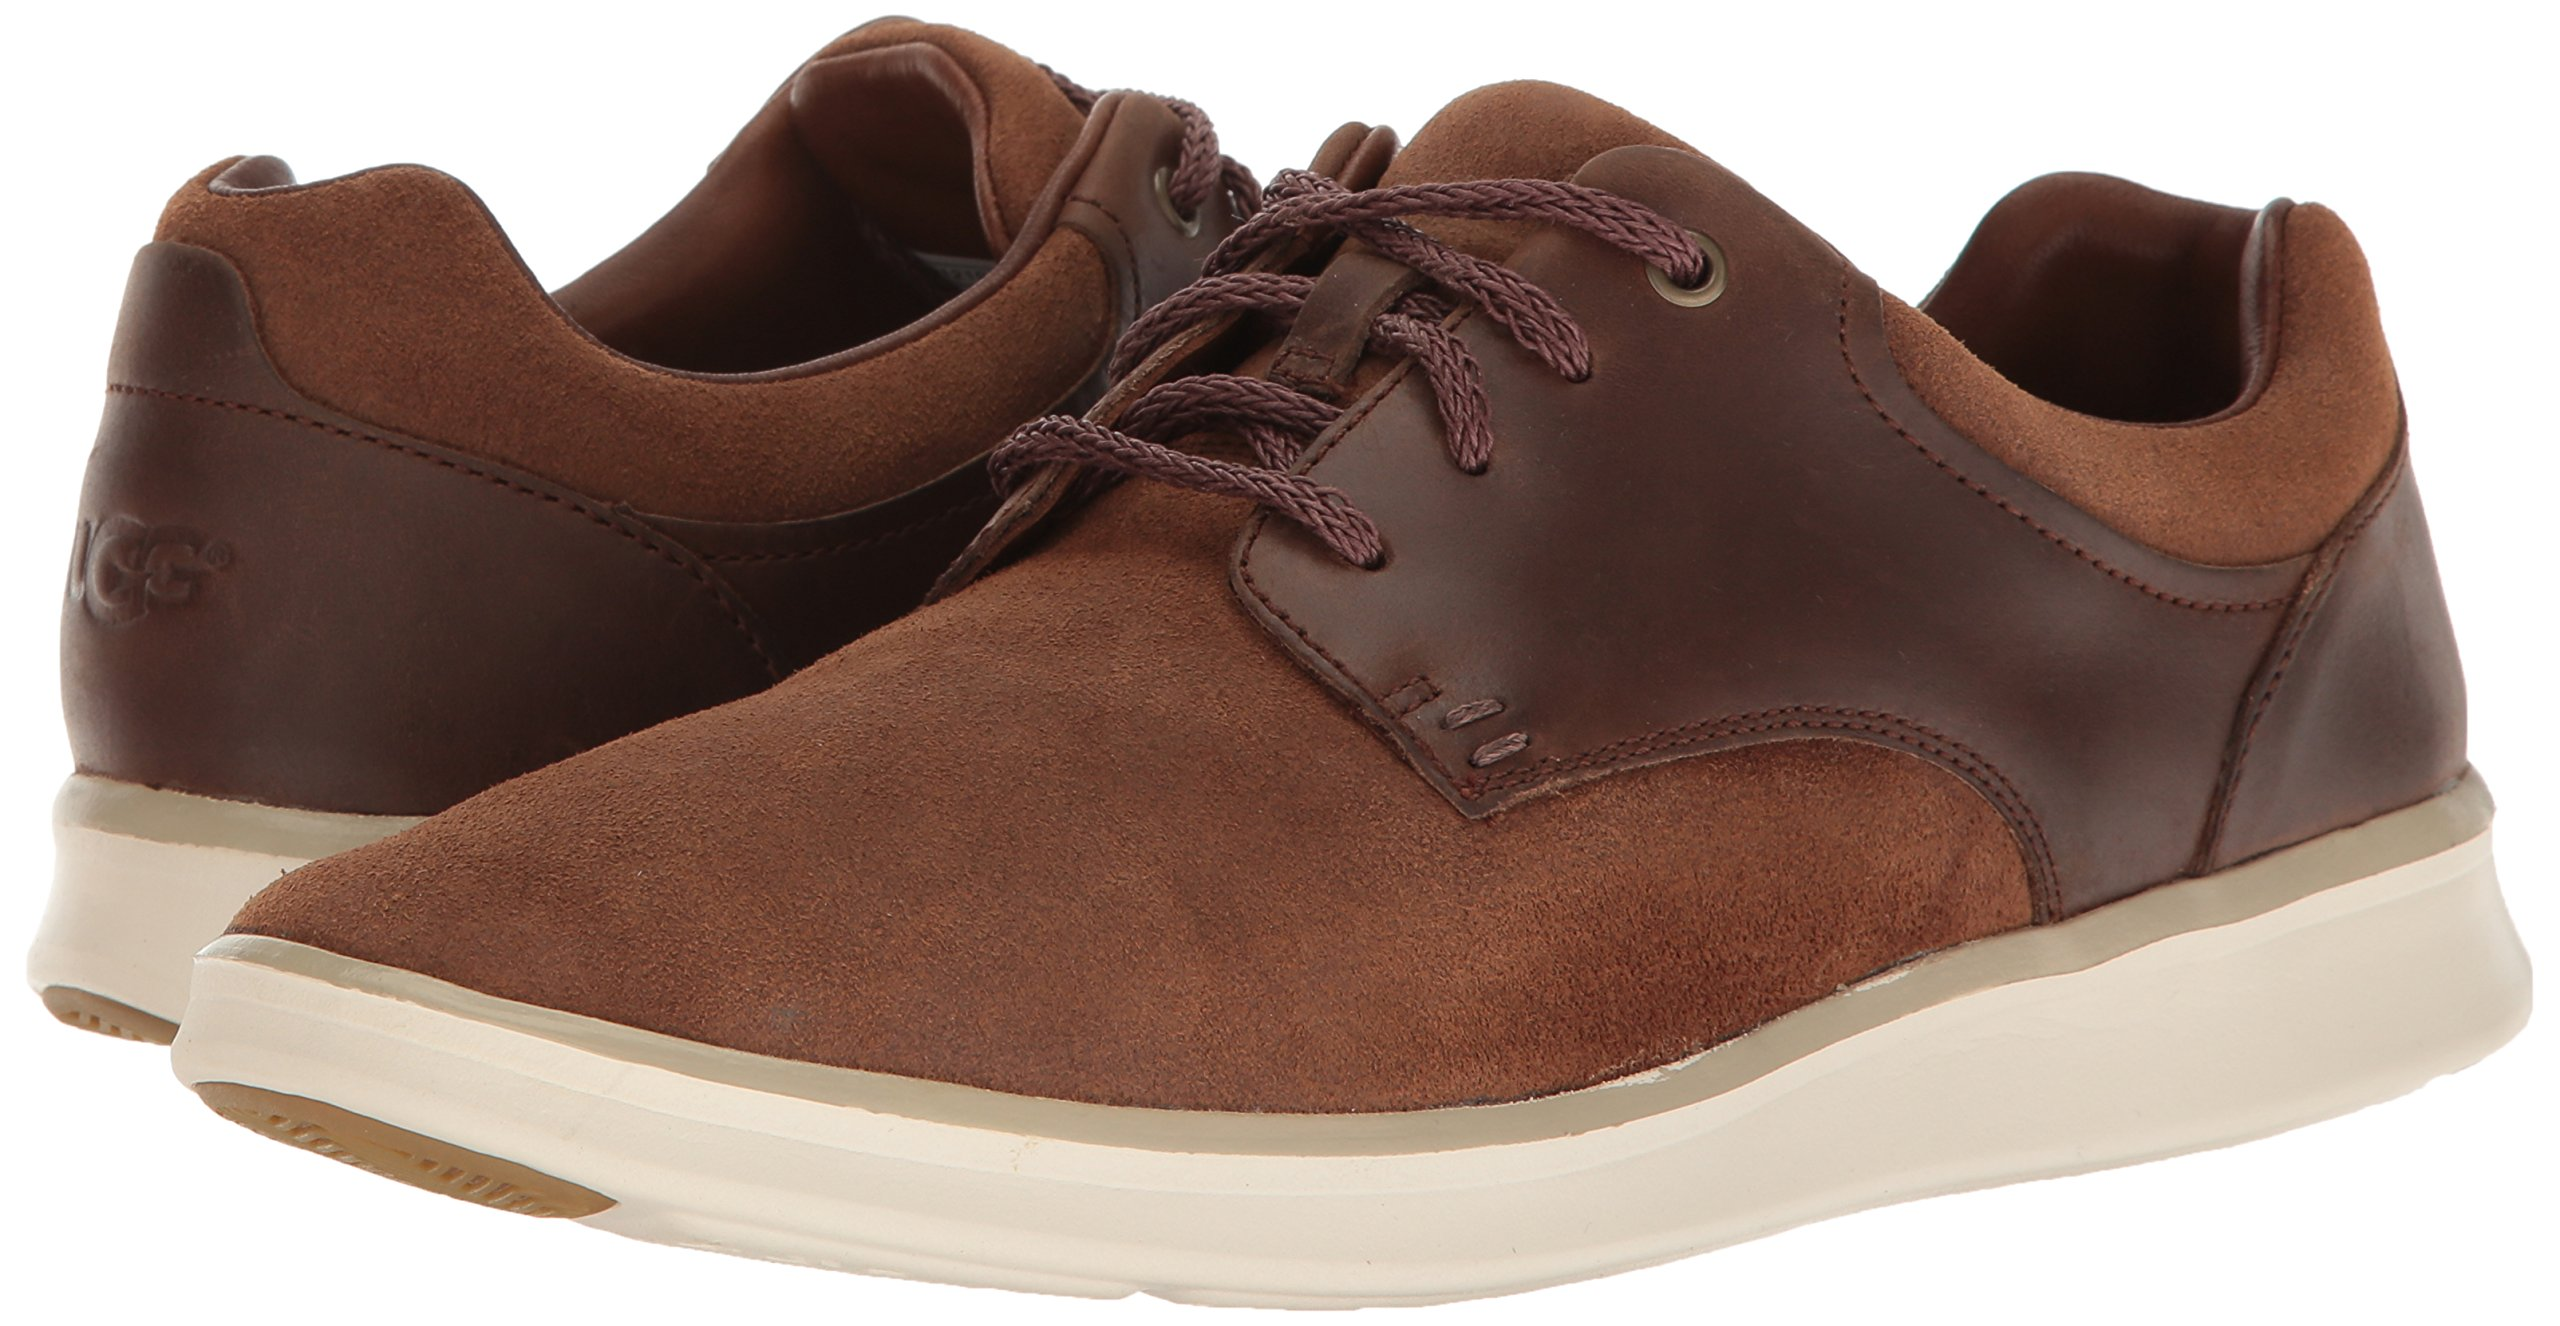 UGG Men's Hepner Fashion Sneaker Chestnut 11.5 M US by UGG (Image #6)